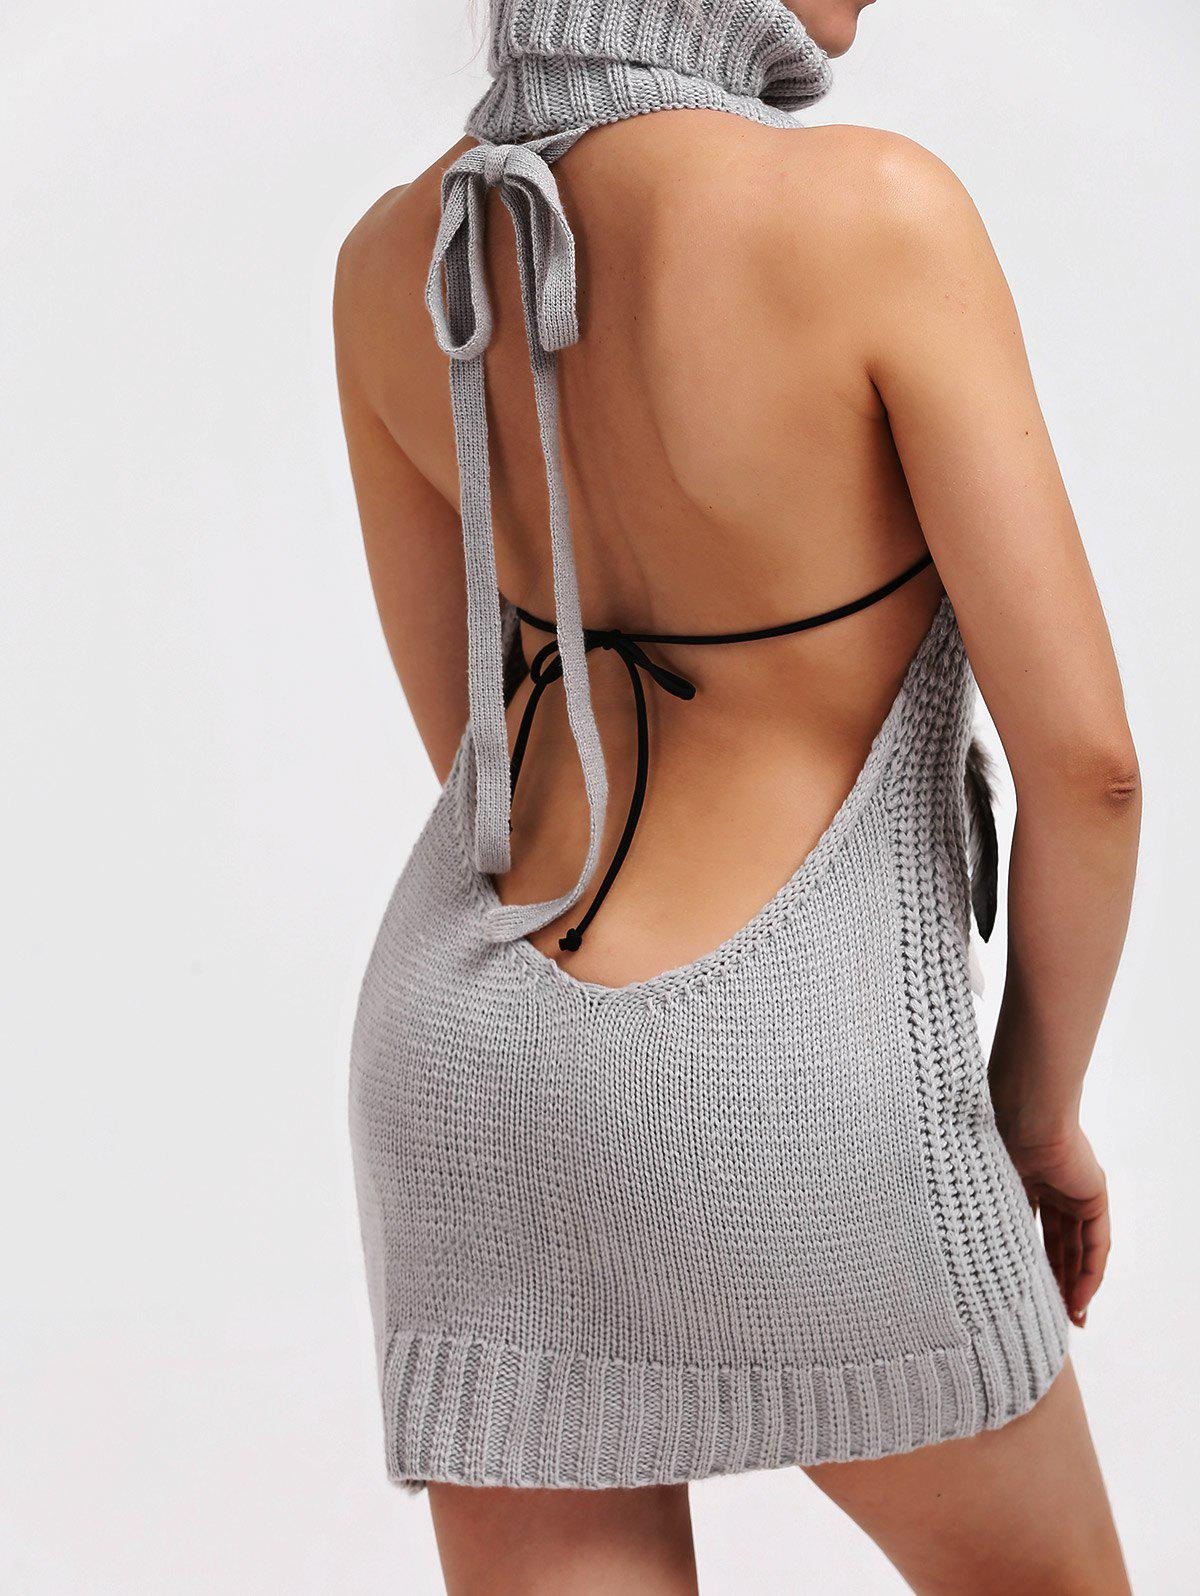 Backless Turtleneck Lace Up Jumper Dress - LIGHT GRAY M